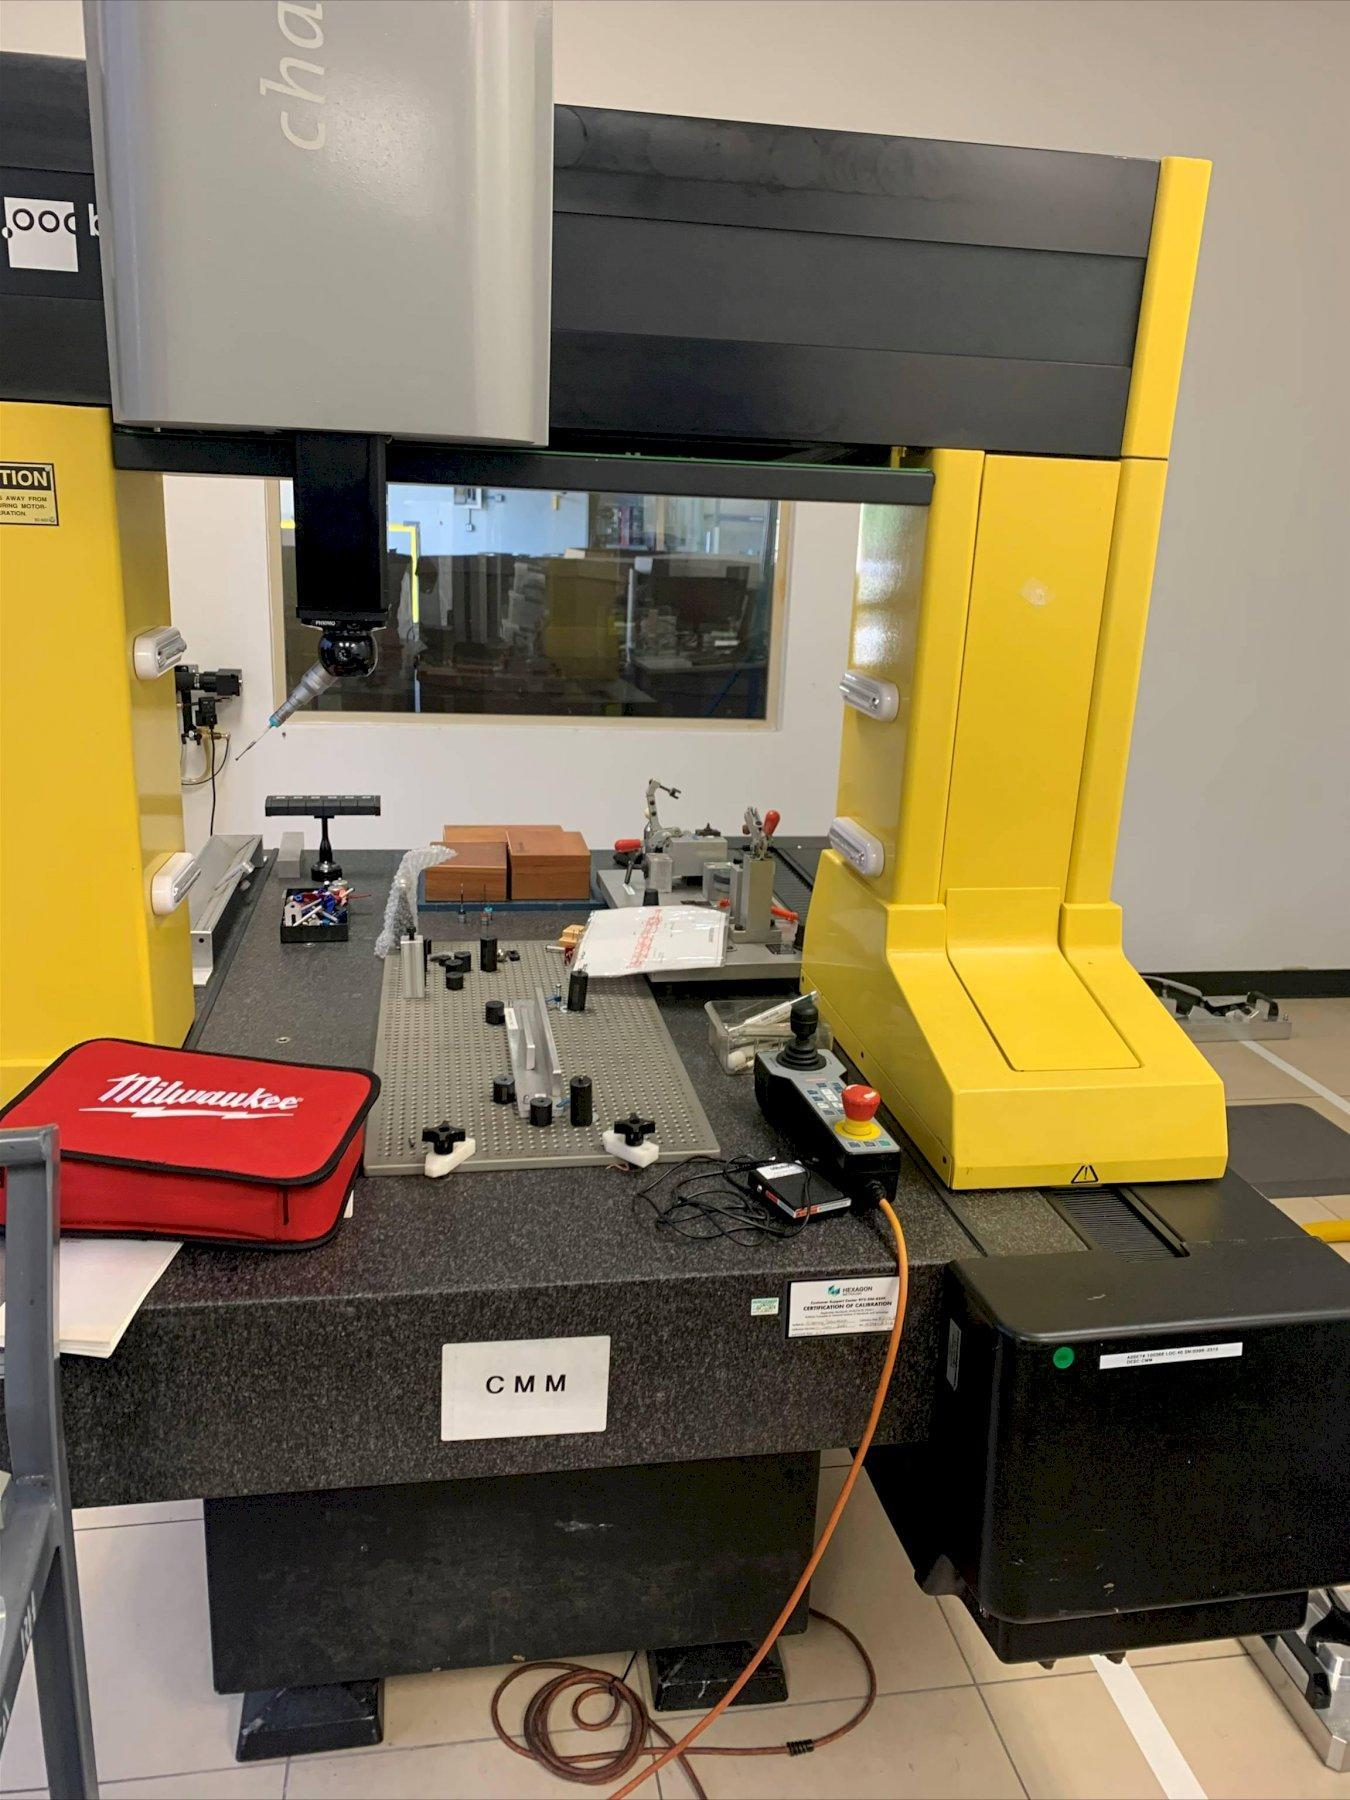 Brown and Sharpe Chameleon 7-10-7 DCC Coordinate Measuring Machine